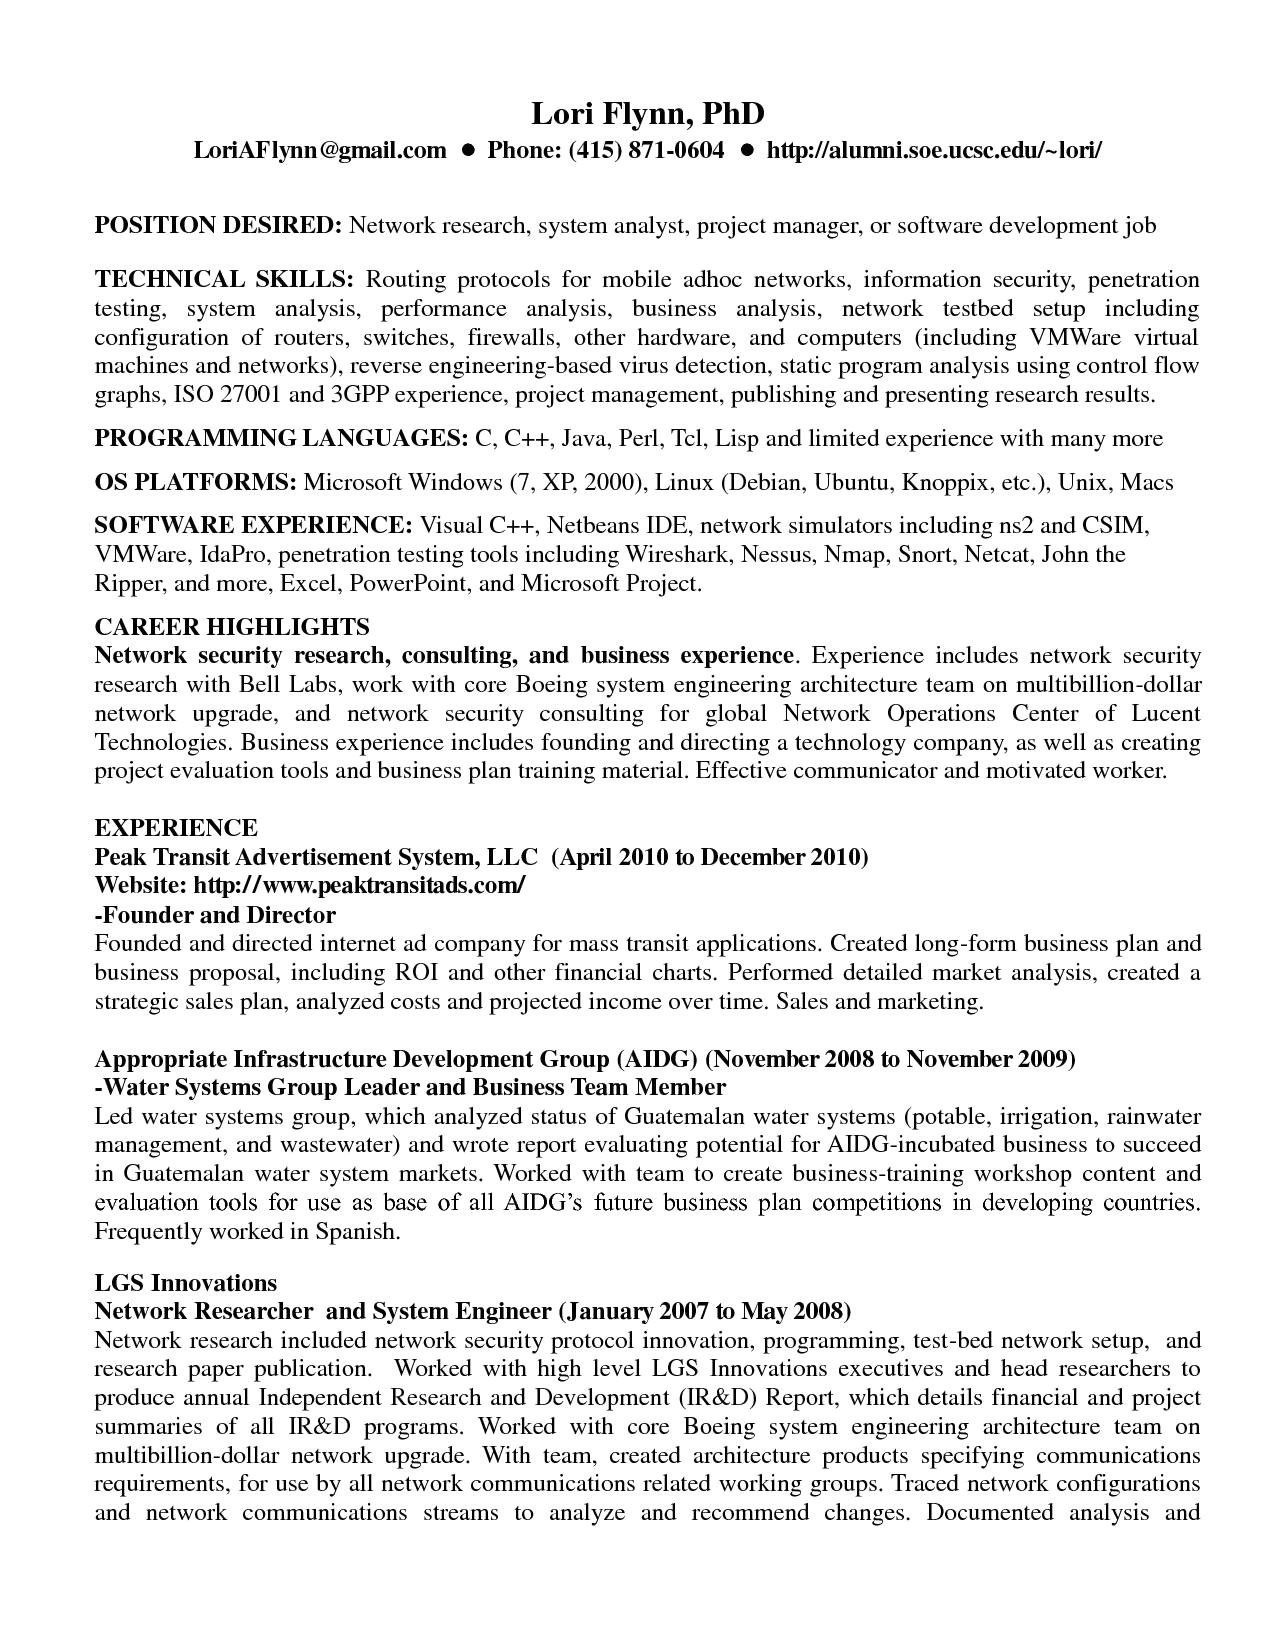 6 months experience resume sample in software engineer unique 99 free sample resume for software engineer